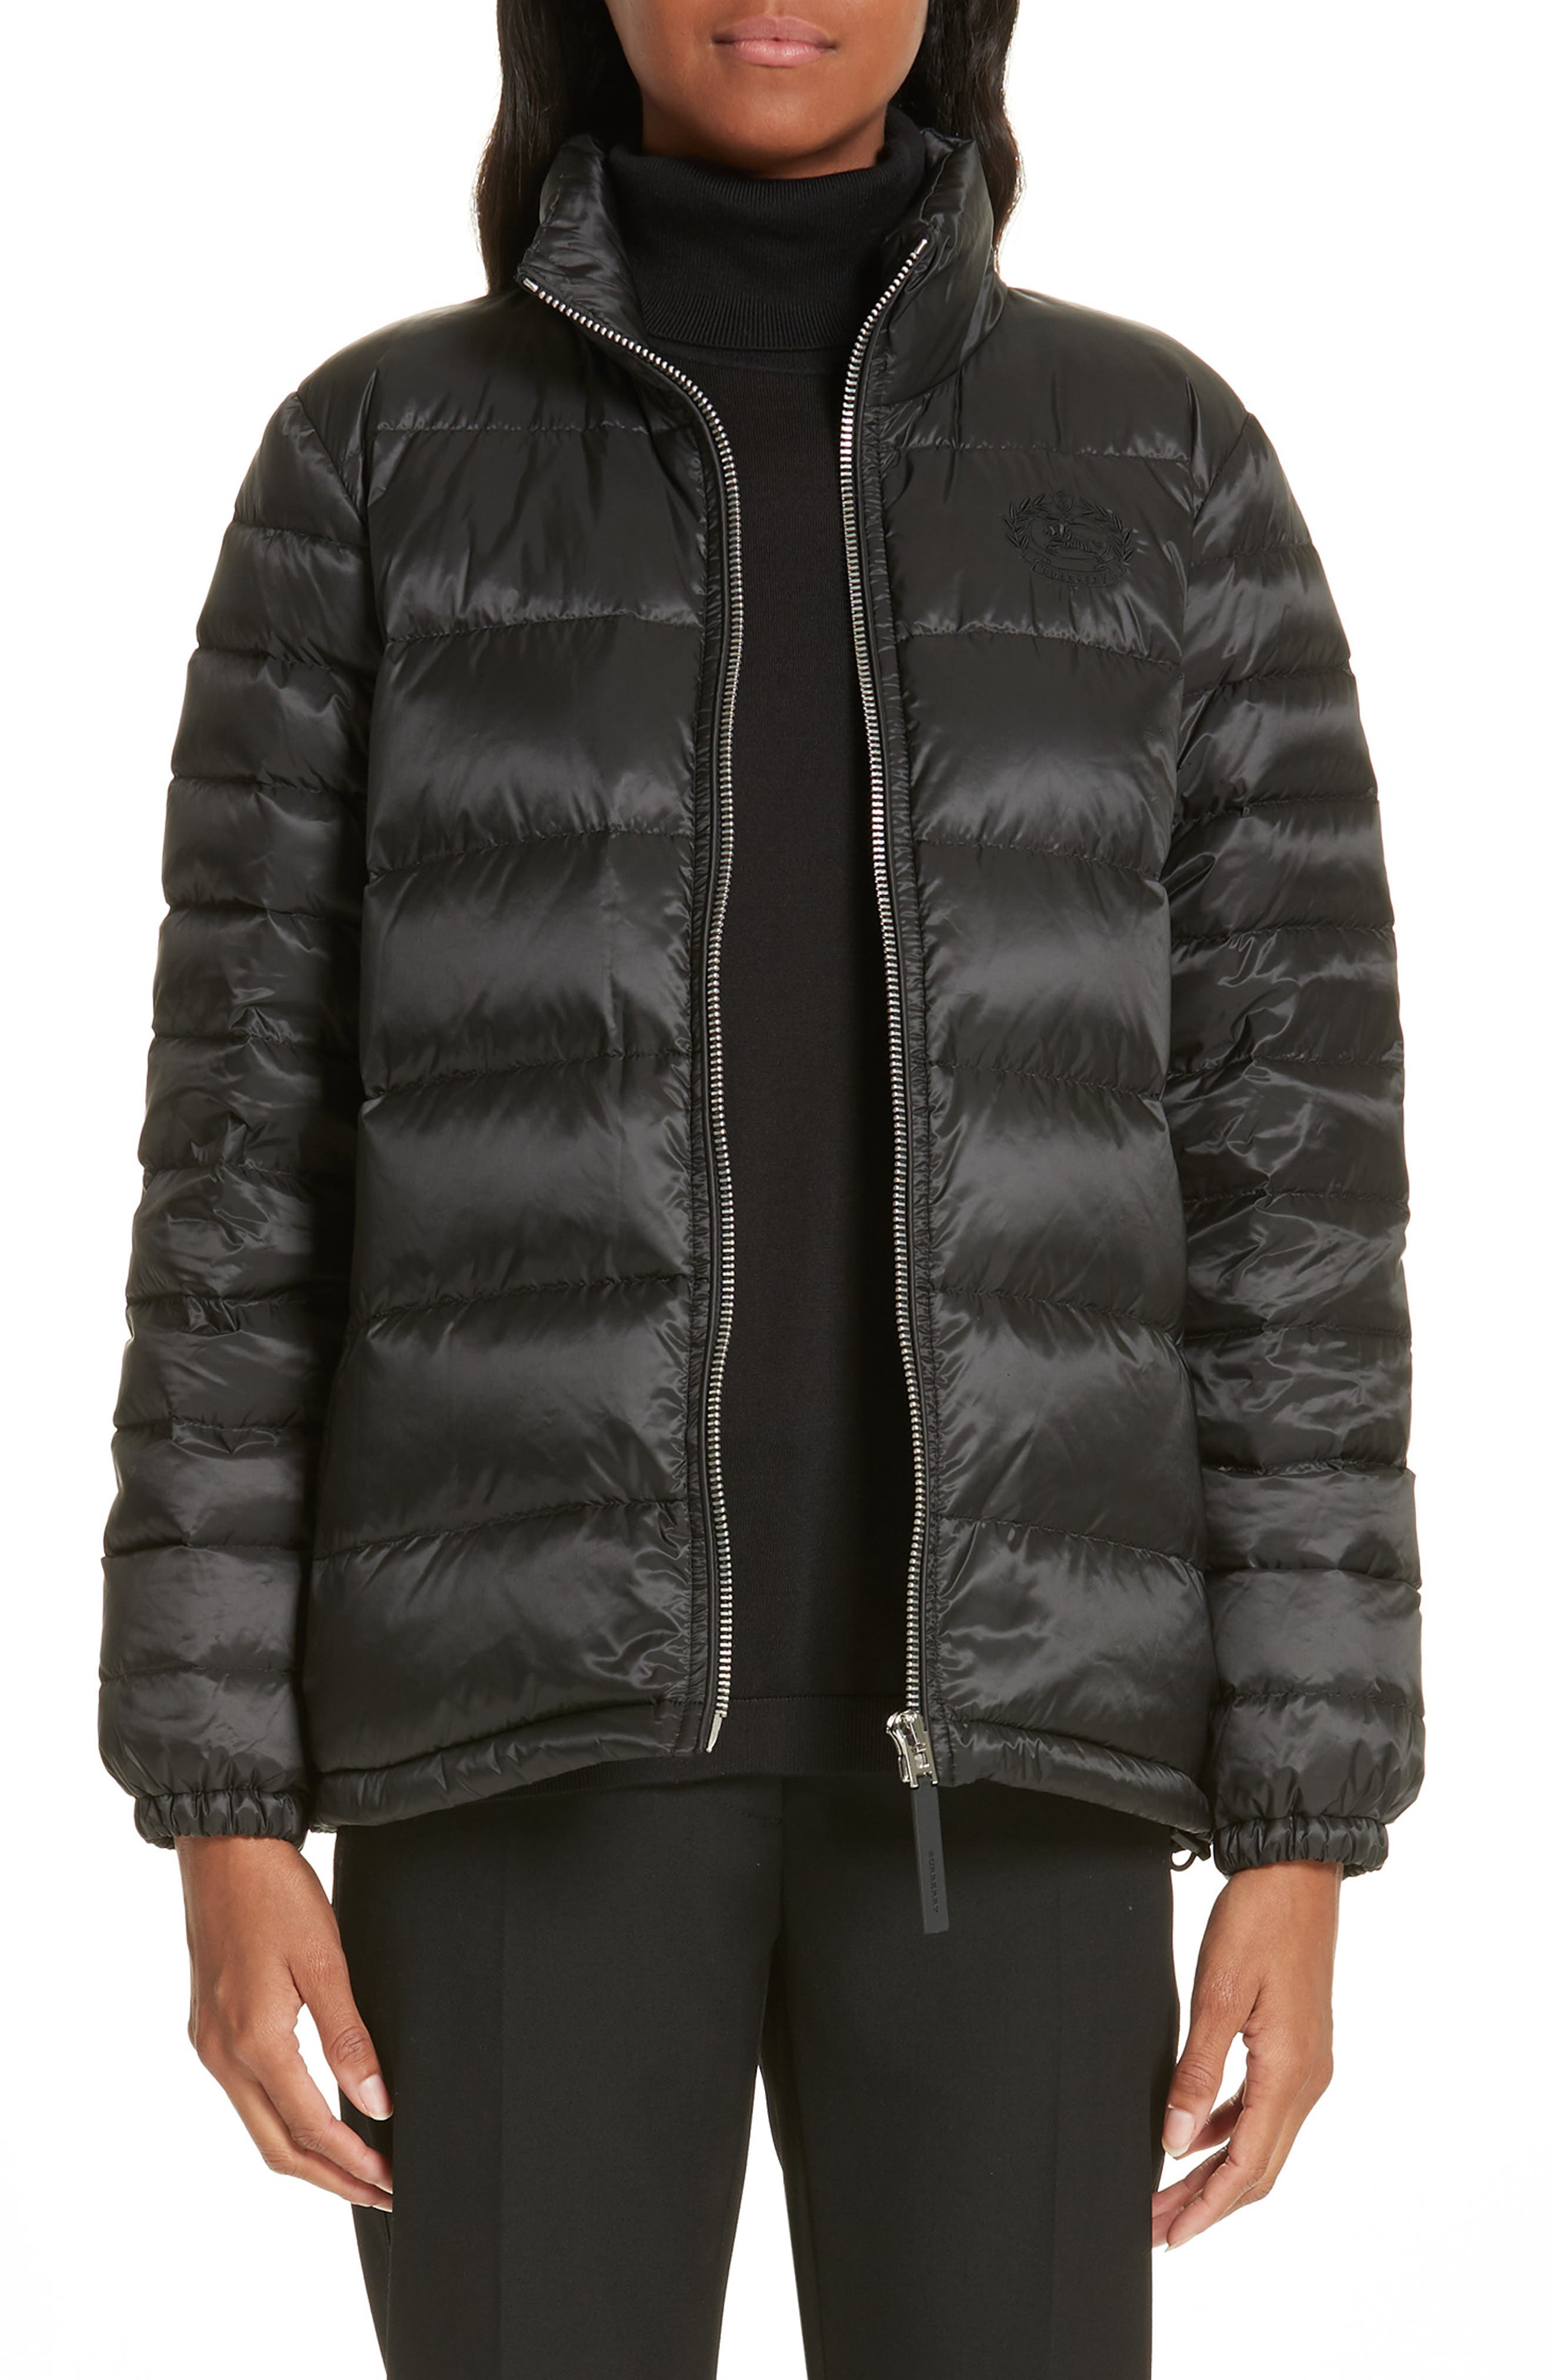 BURBERRY, Smethwick Archive Logo Quilted Down Puffer Coat, Main thumbnail 1, color, BLACK